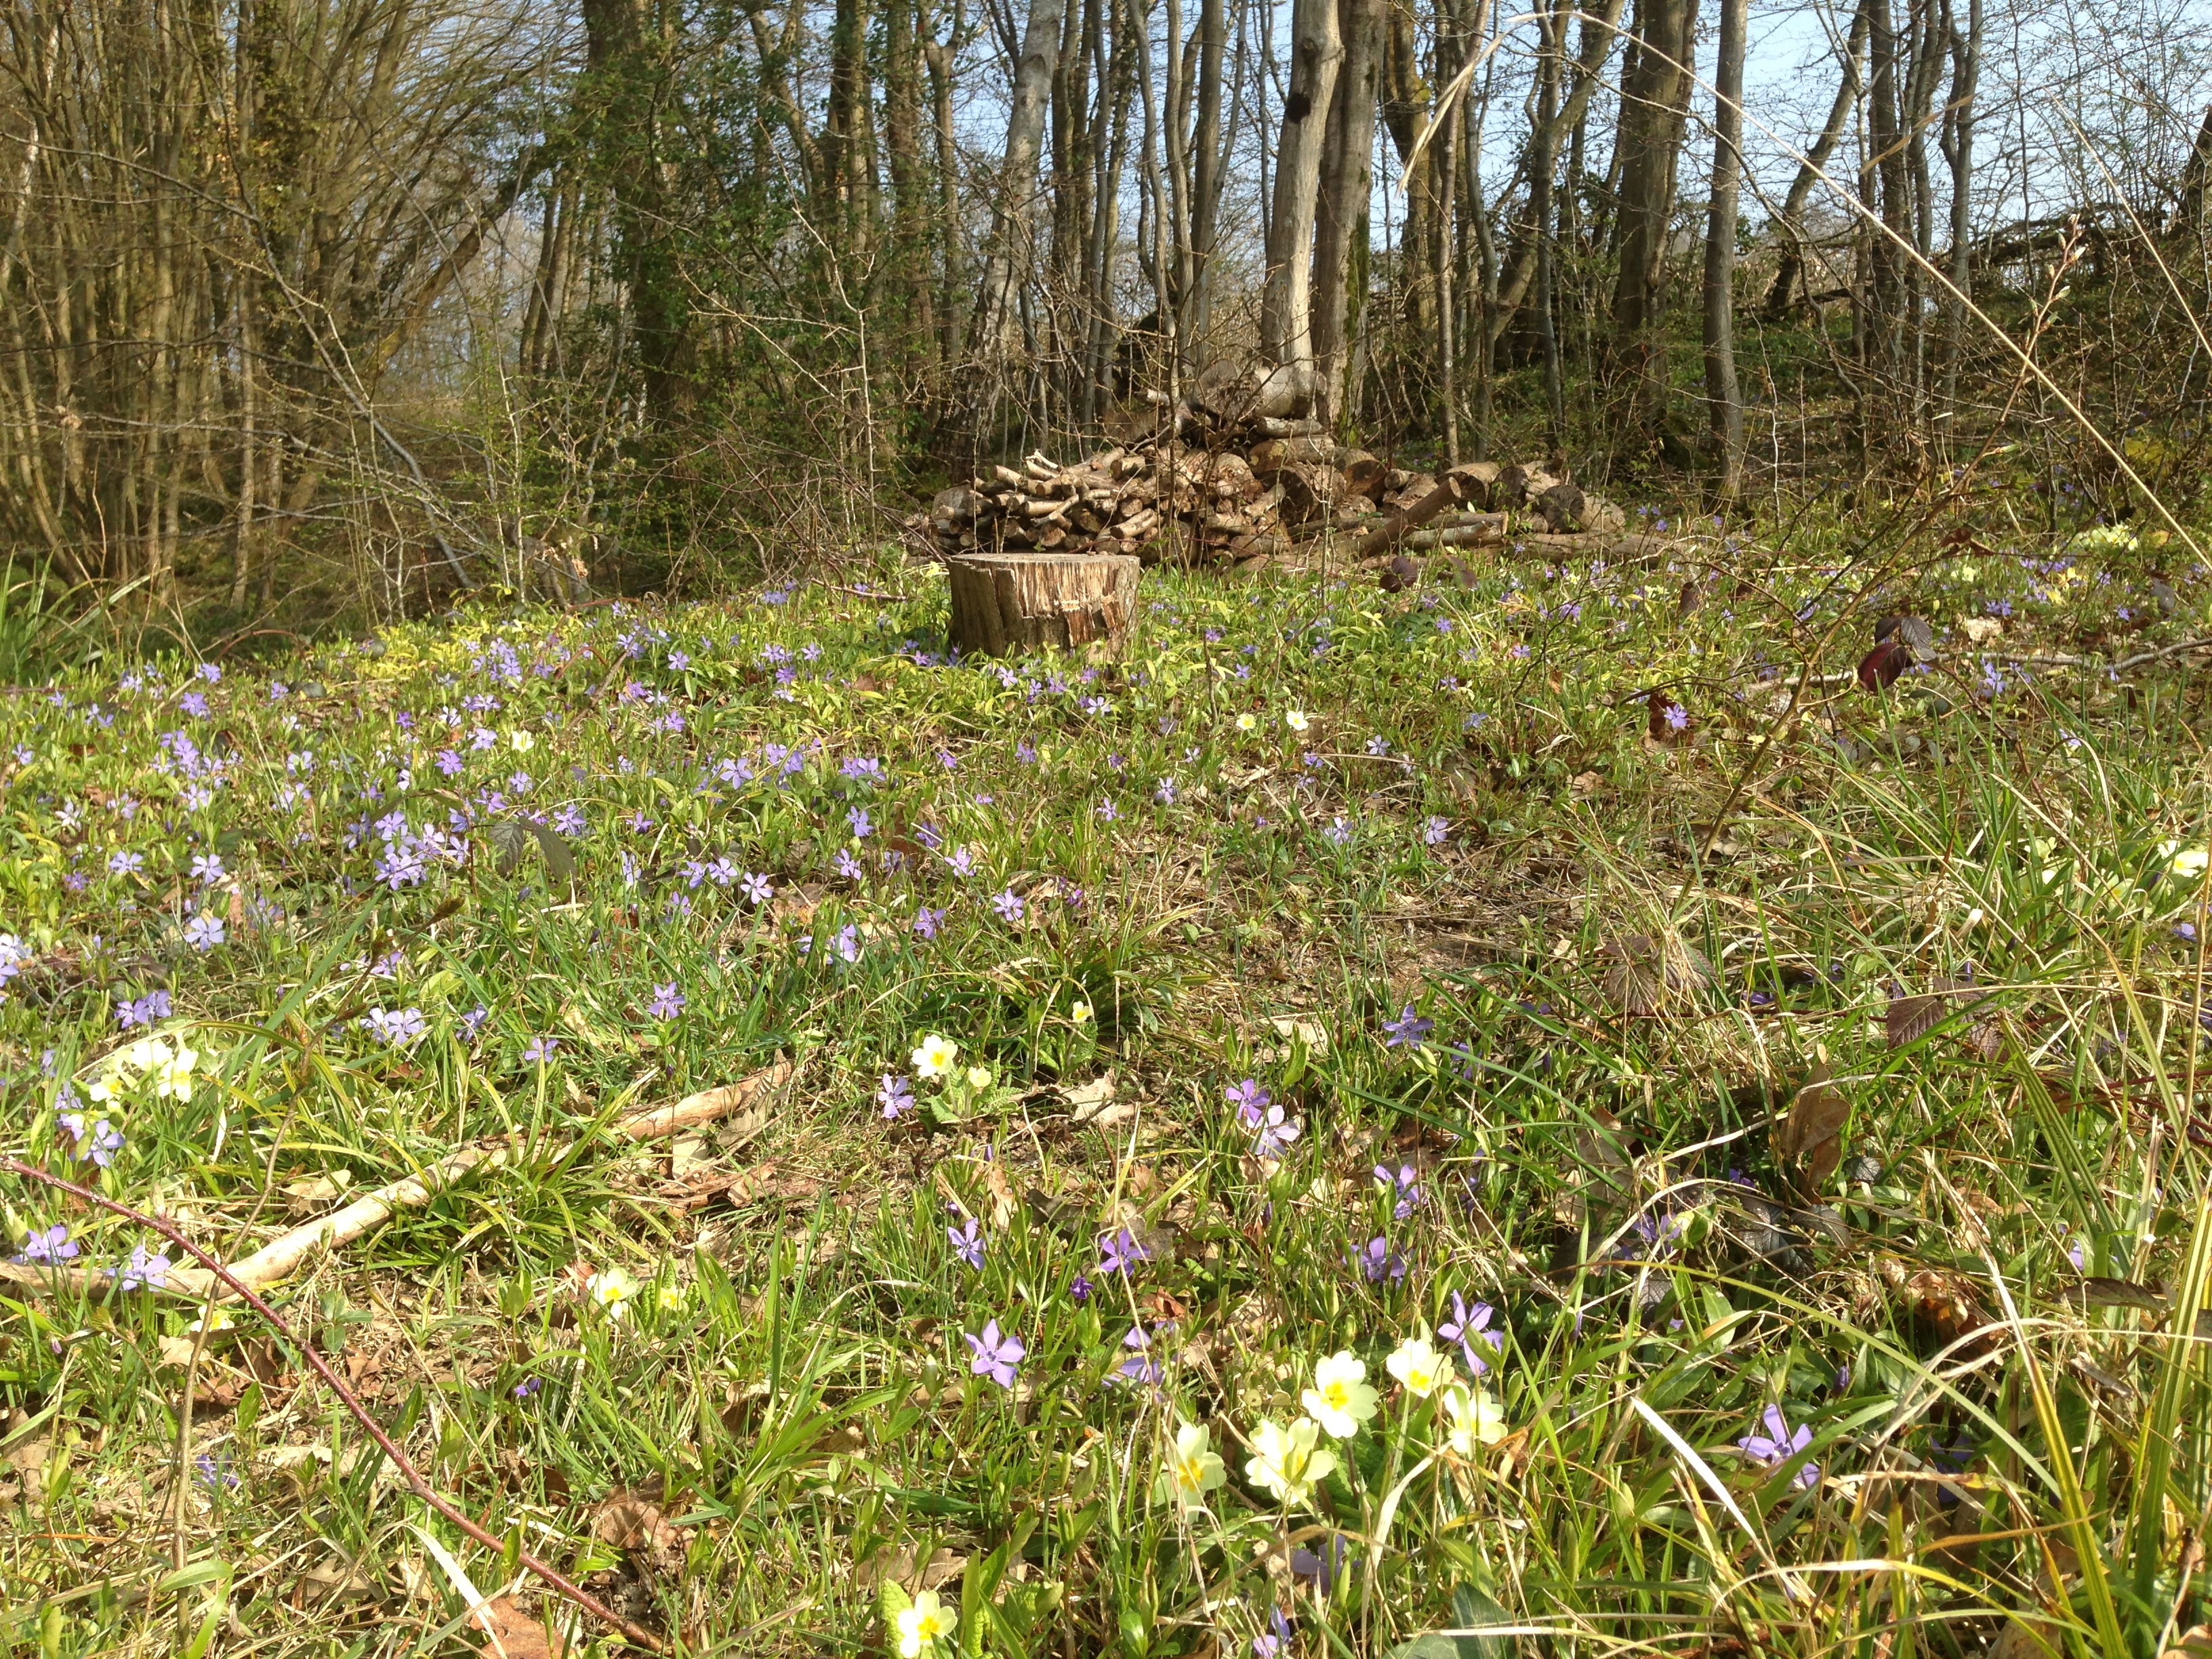 Primroses and Periwinkles in the spring sunshine